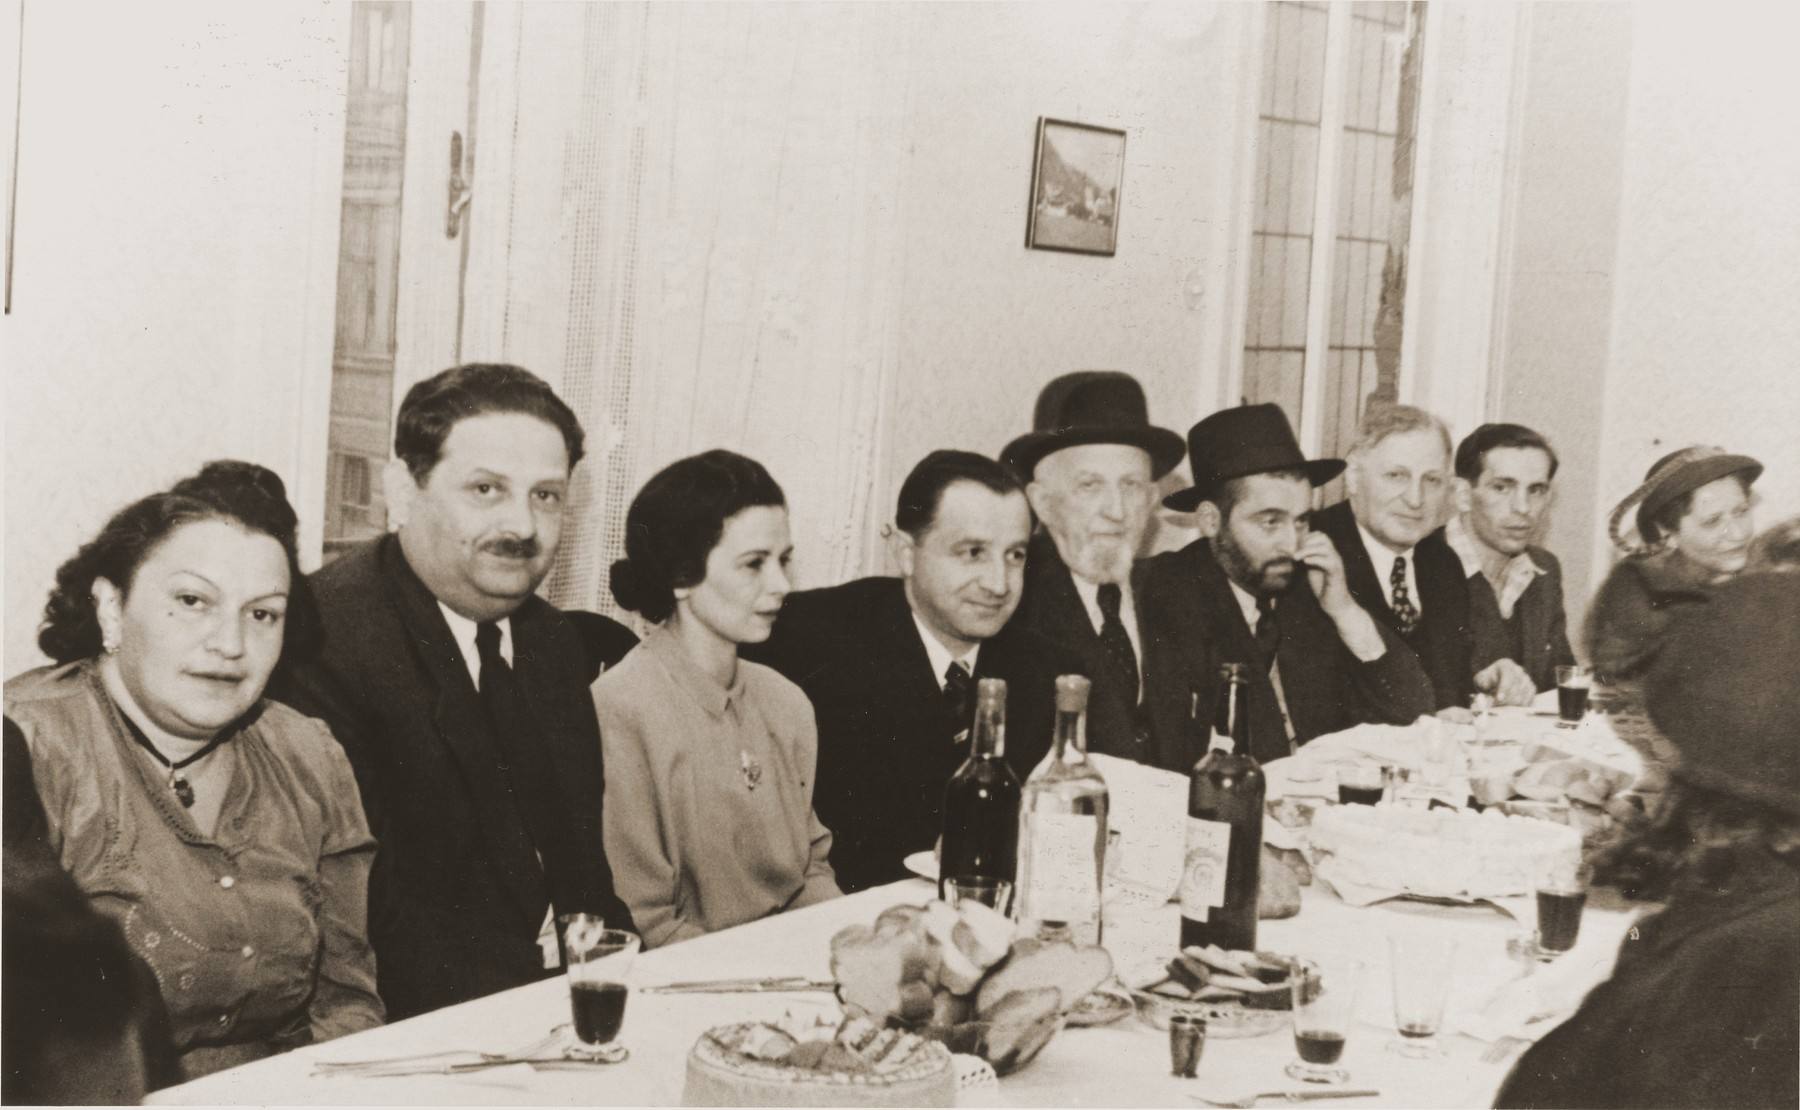 Jewish DPs celebrate at a banquet at the Rothschild Hospital.  Seated in the center is Kravetz, chief of security.  Third from the left is Abel Birman.